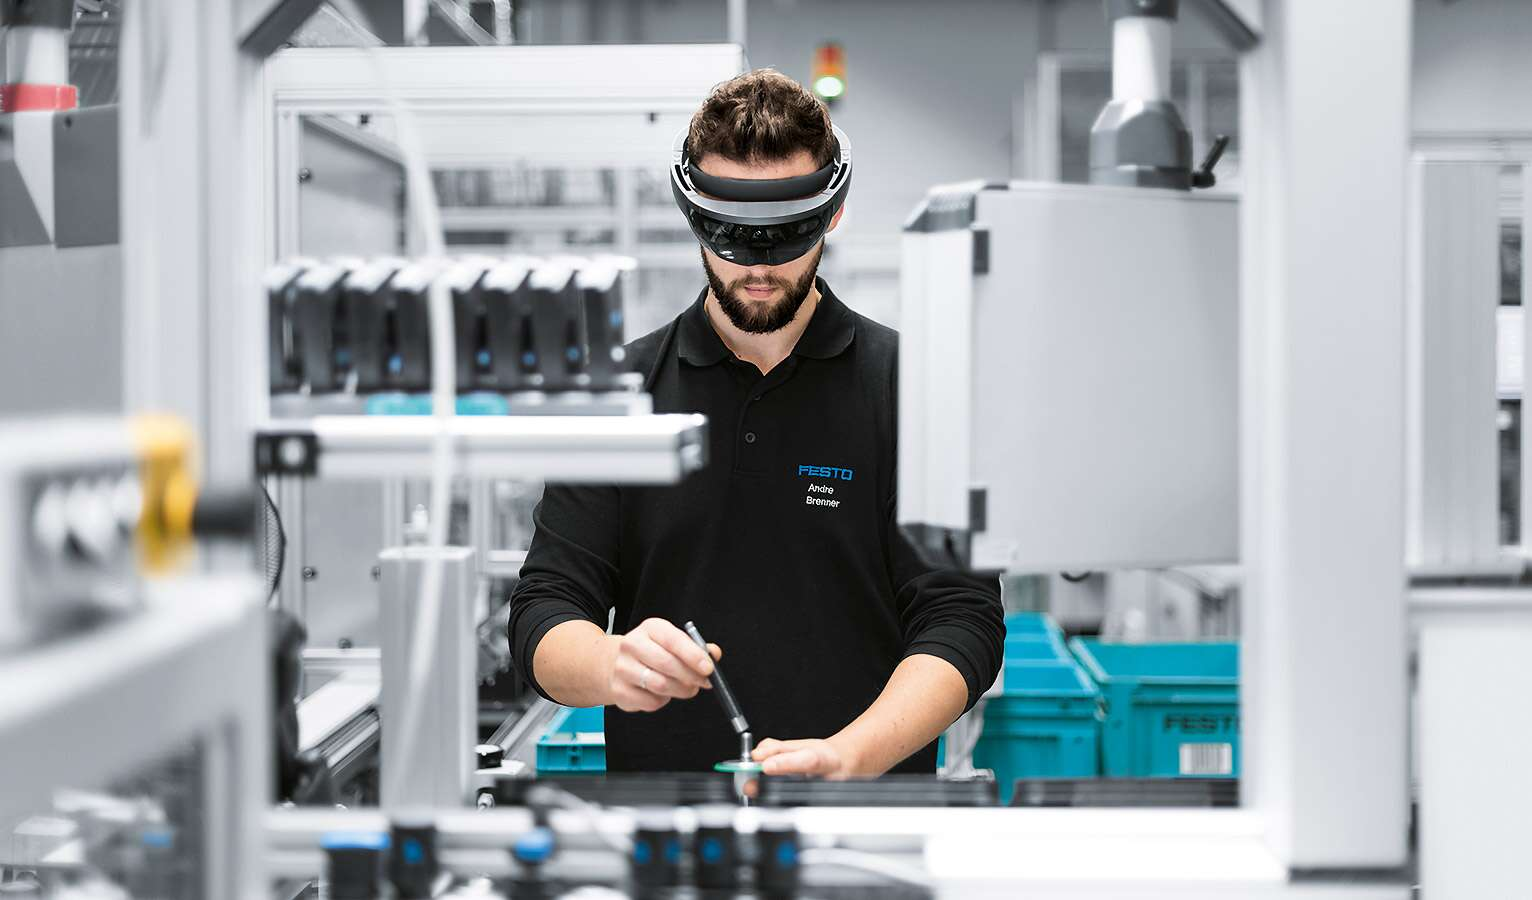 Testimonials by entry-level newcomers at Festo